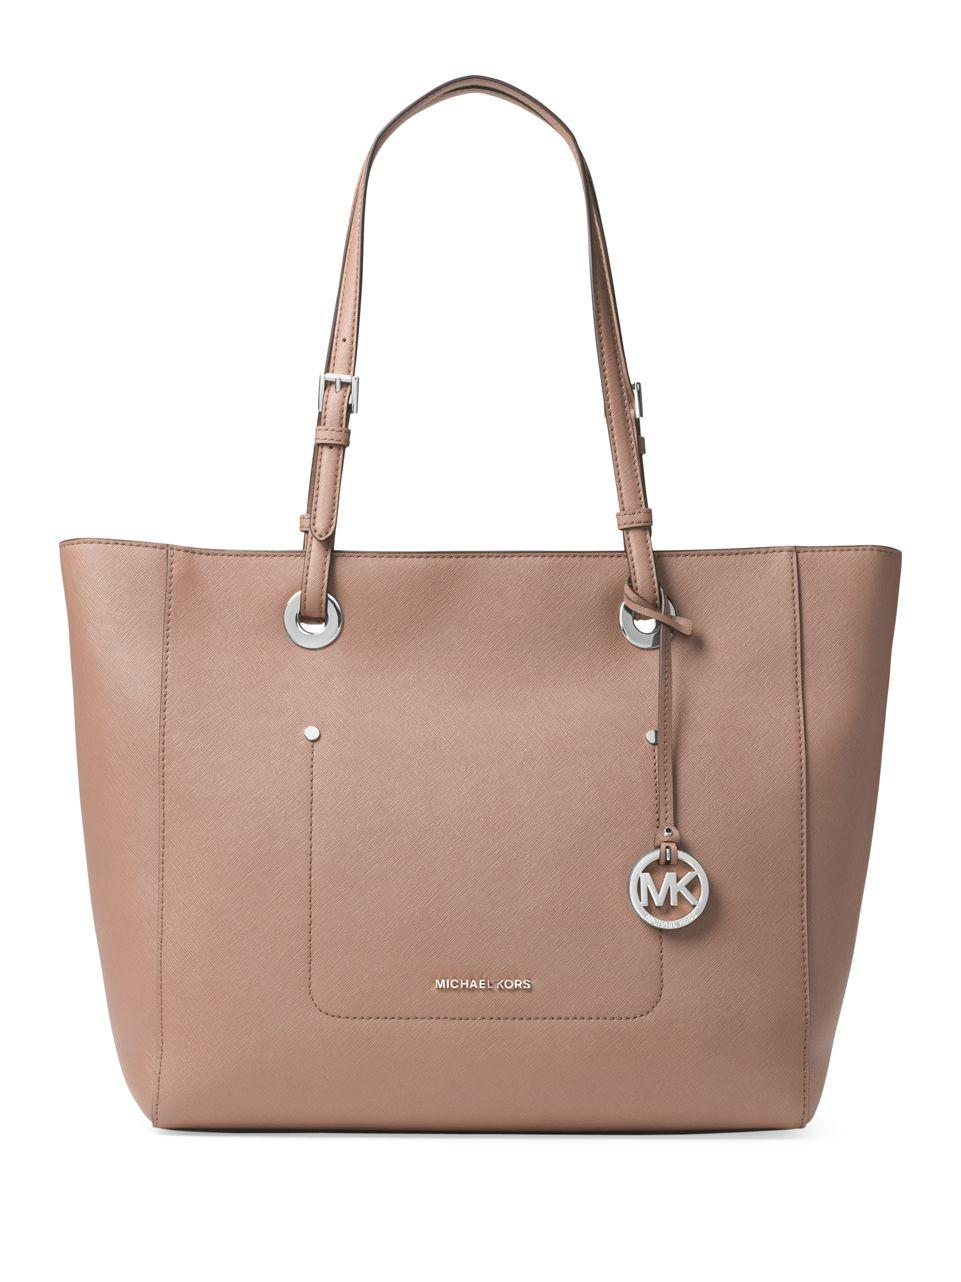 Lyst - Michael Kors Textured Saffiano Leather Tote 228e17acc9579